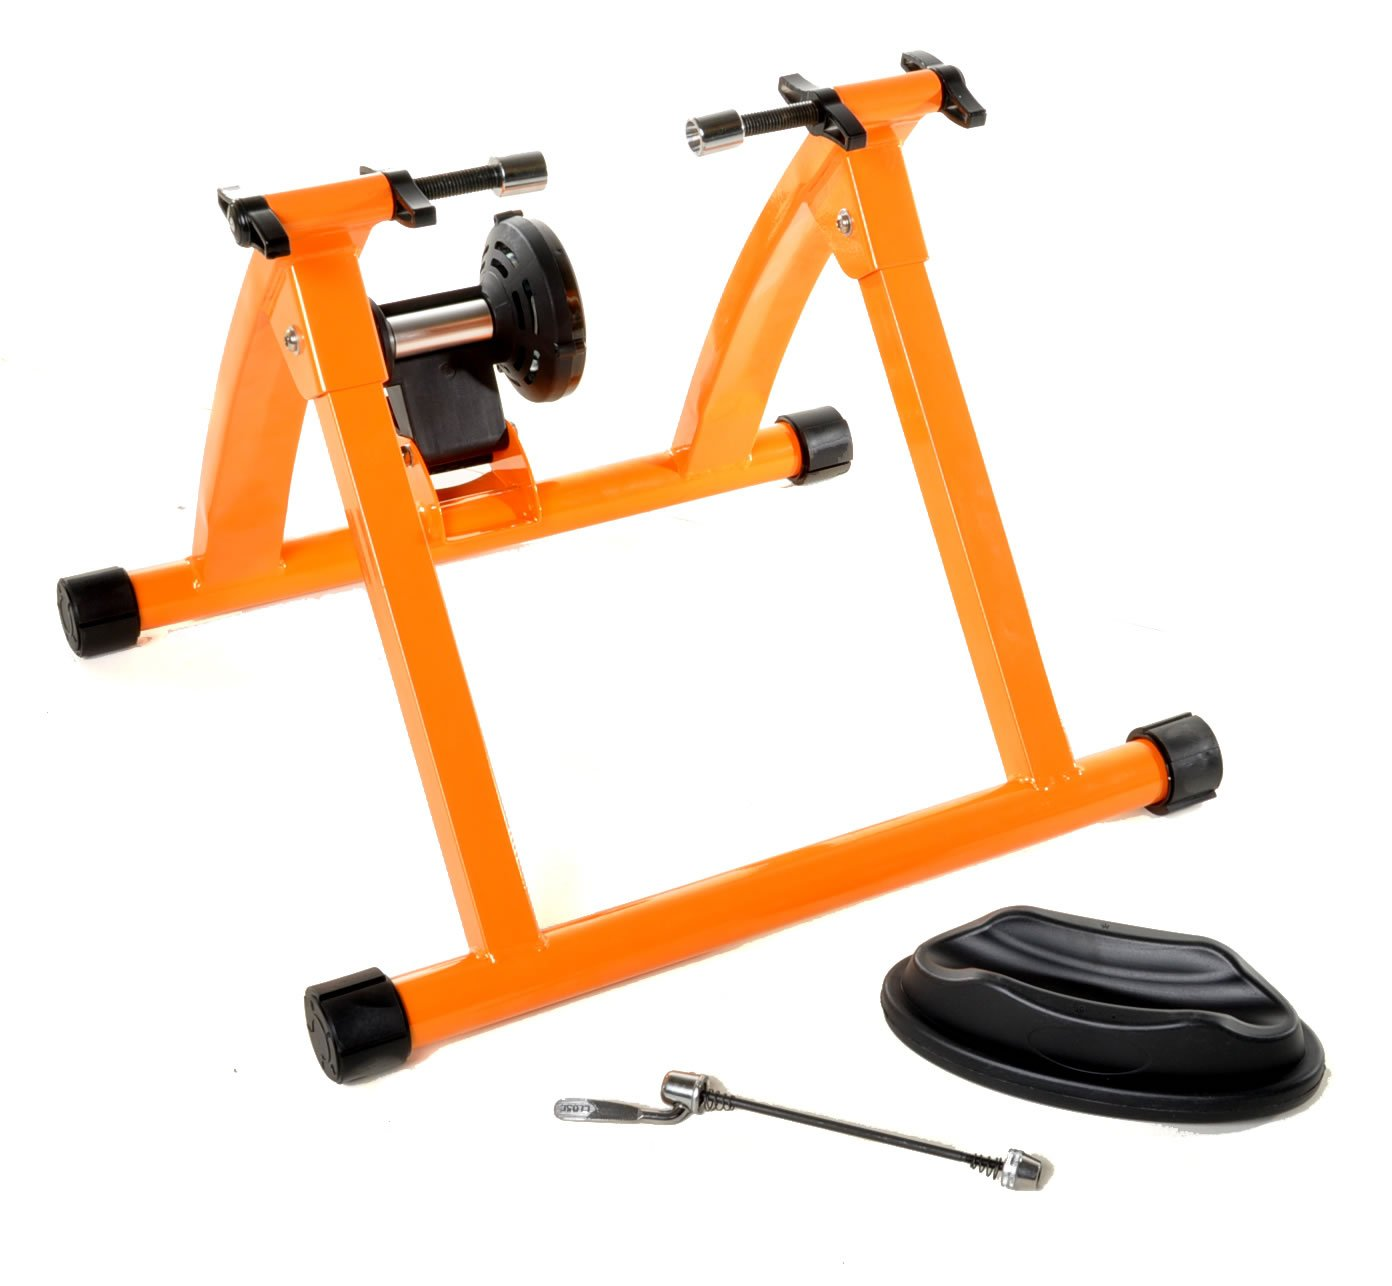 Indoor Bike Trainer Exercise Stand, Orange by Gavin (Image #2)